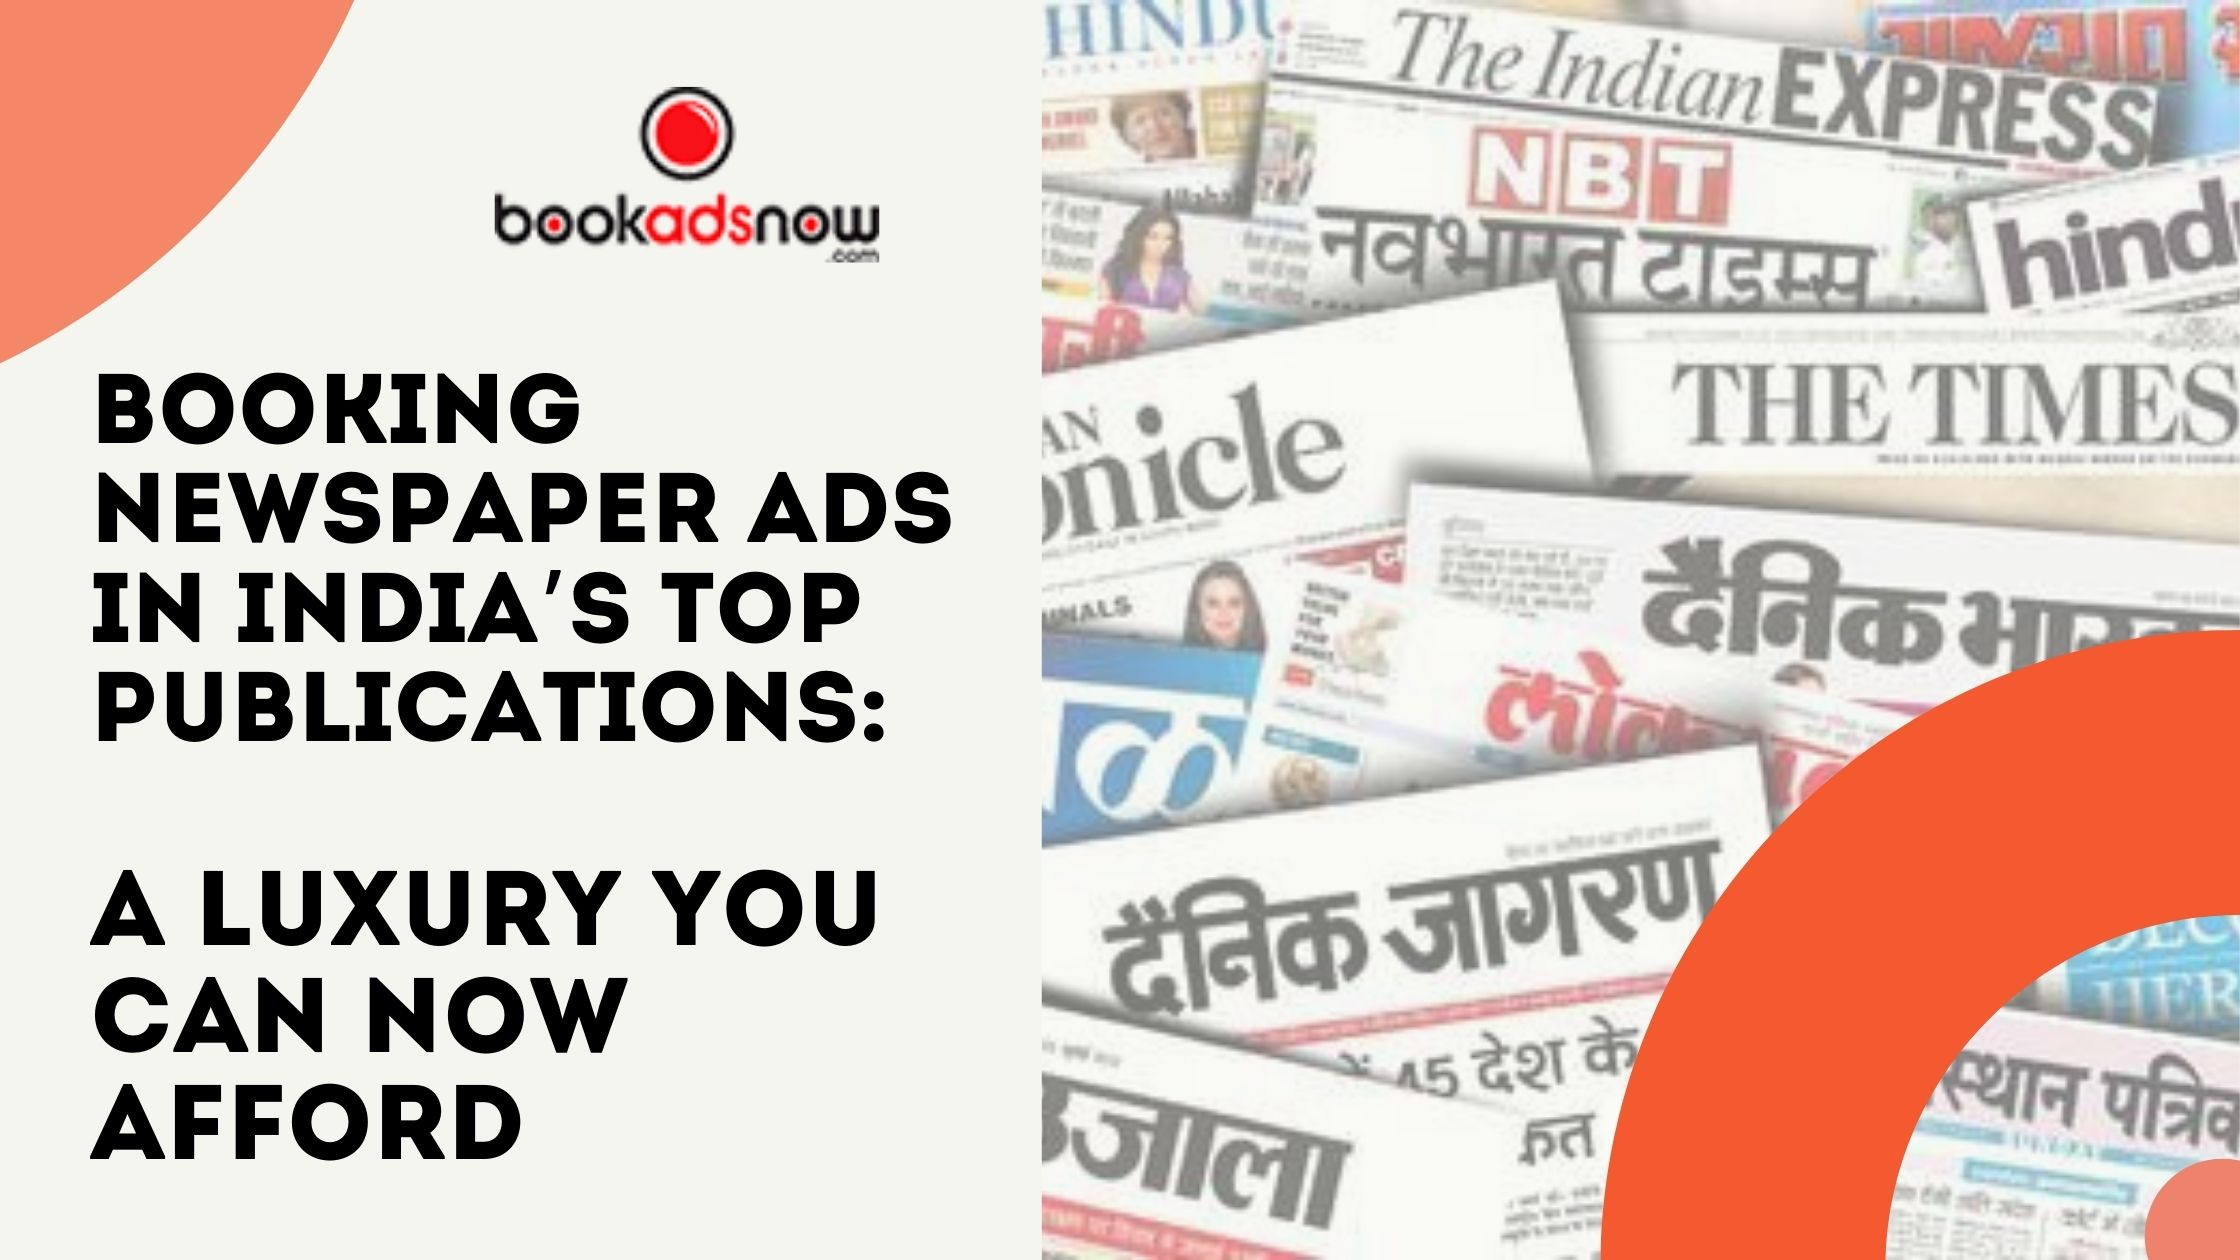 Book Newspaper ads in Major Publications